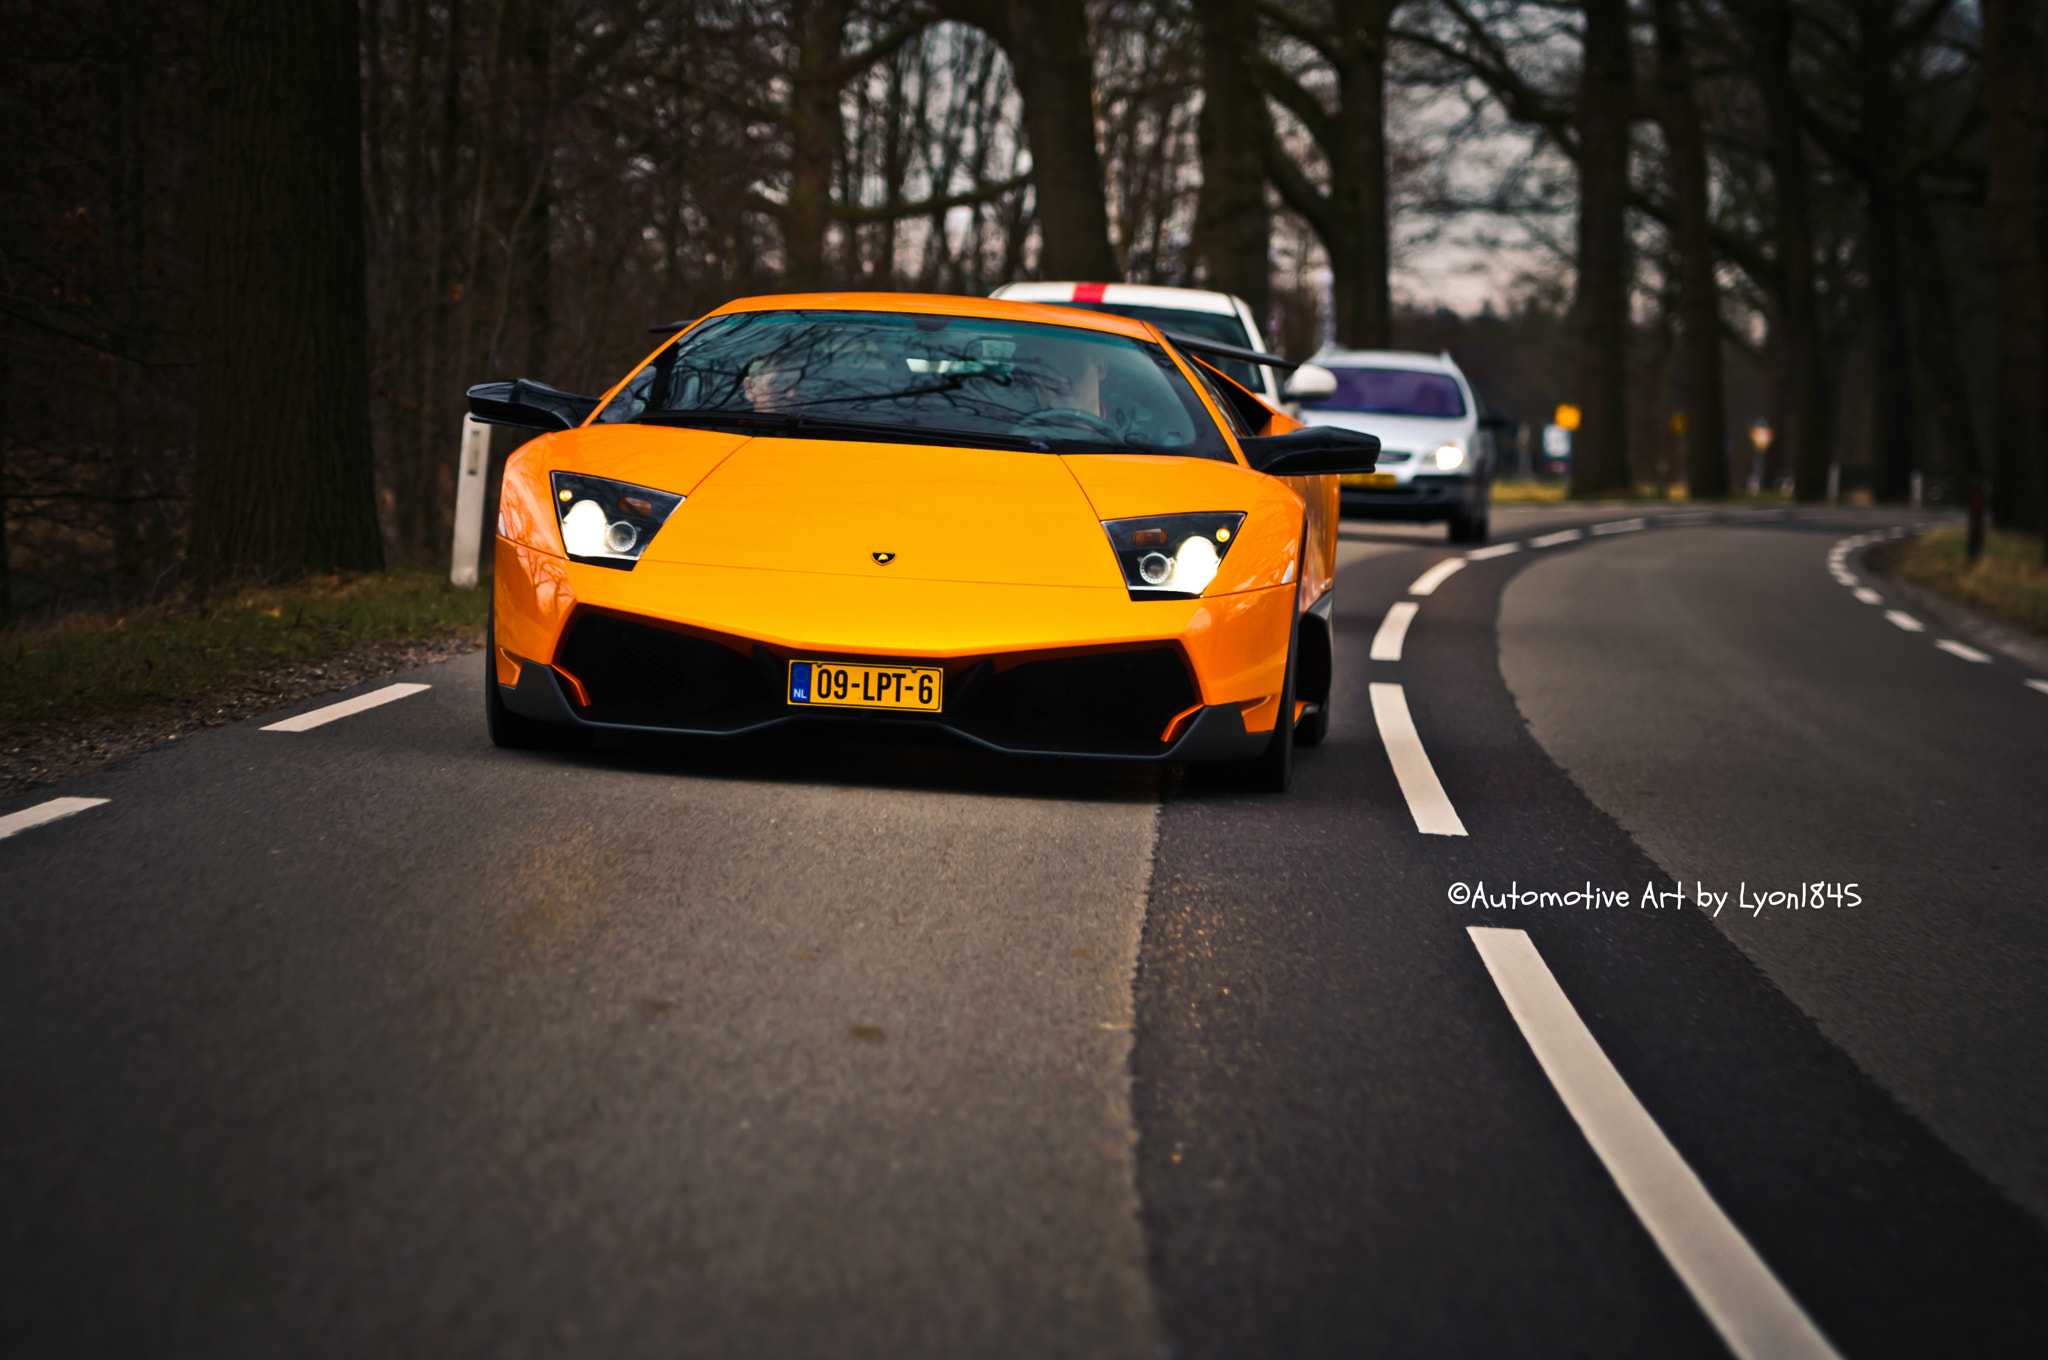 Photograph Lamborghini Murciélago LP670-4 SV by lyon1845 on 500px